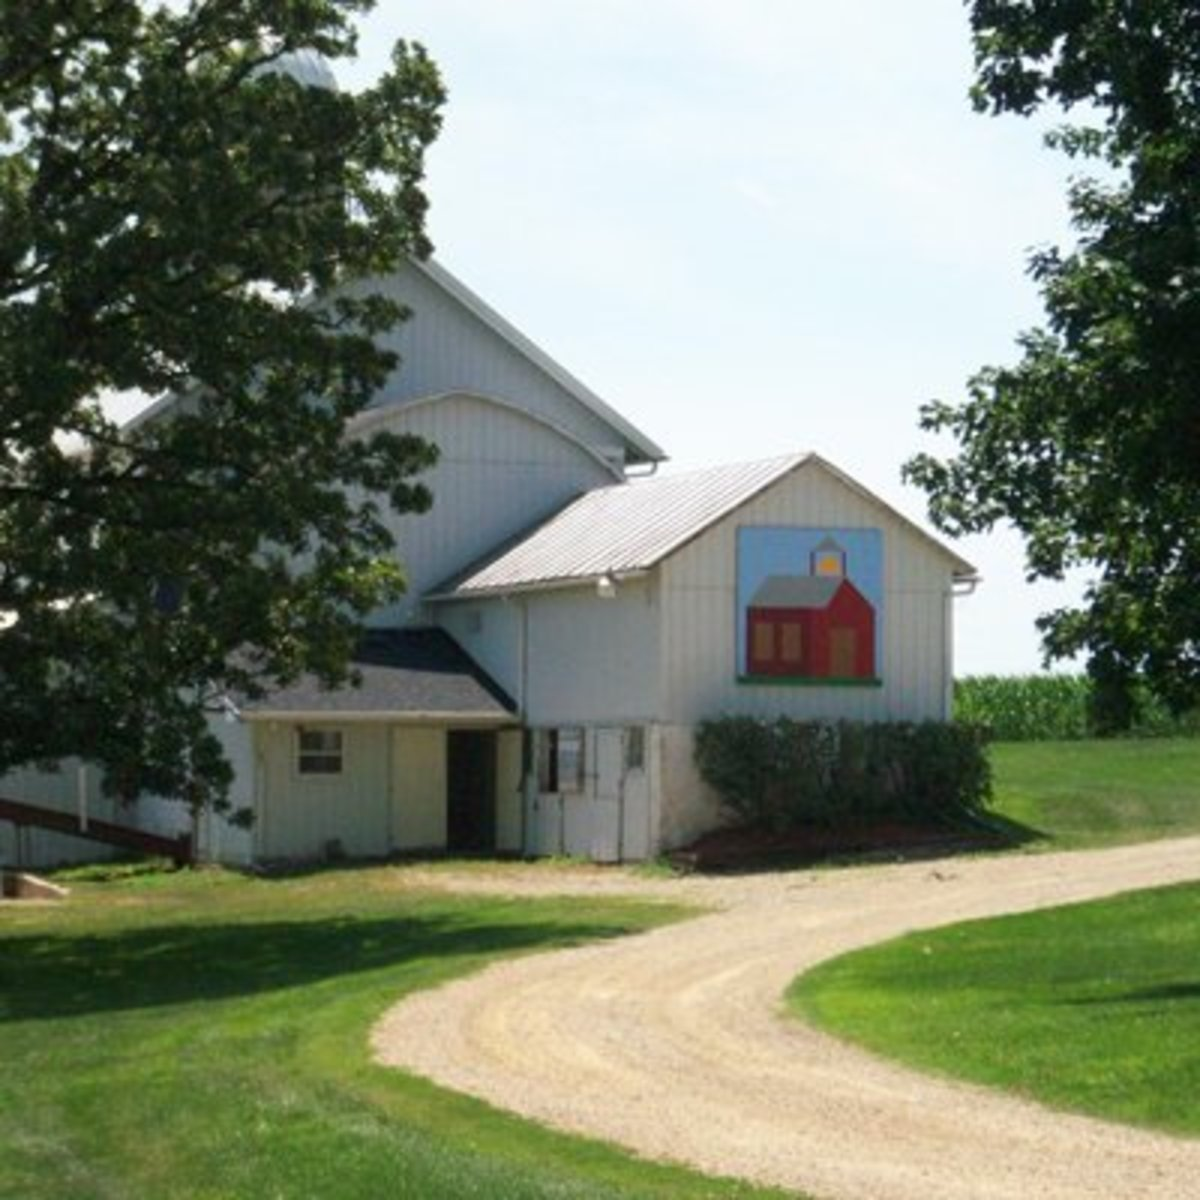 Located on the farm of Dean and Rae Reeson.